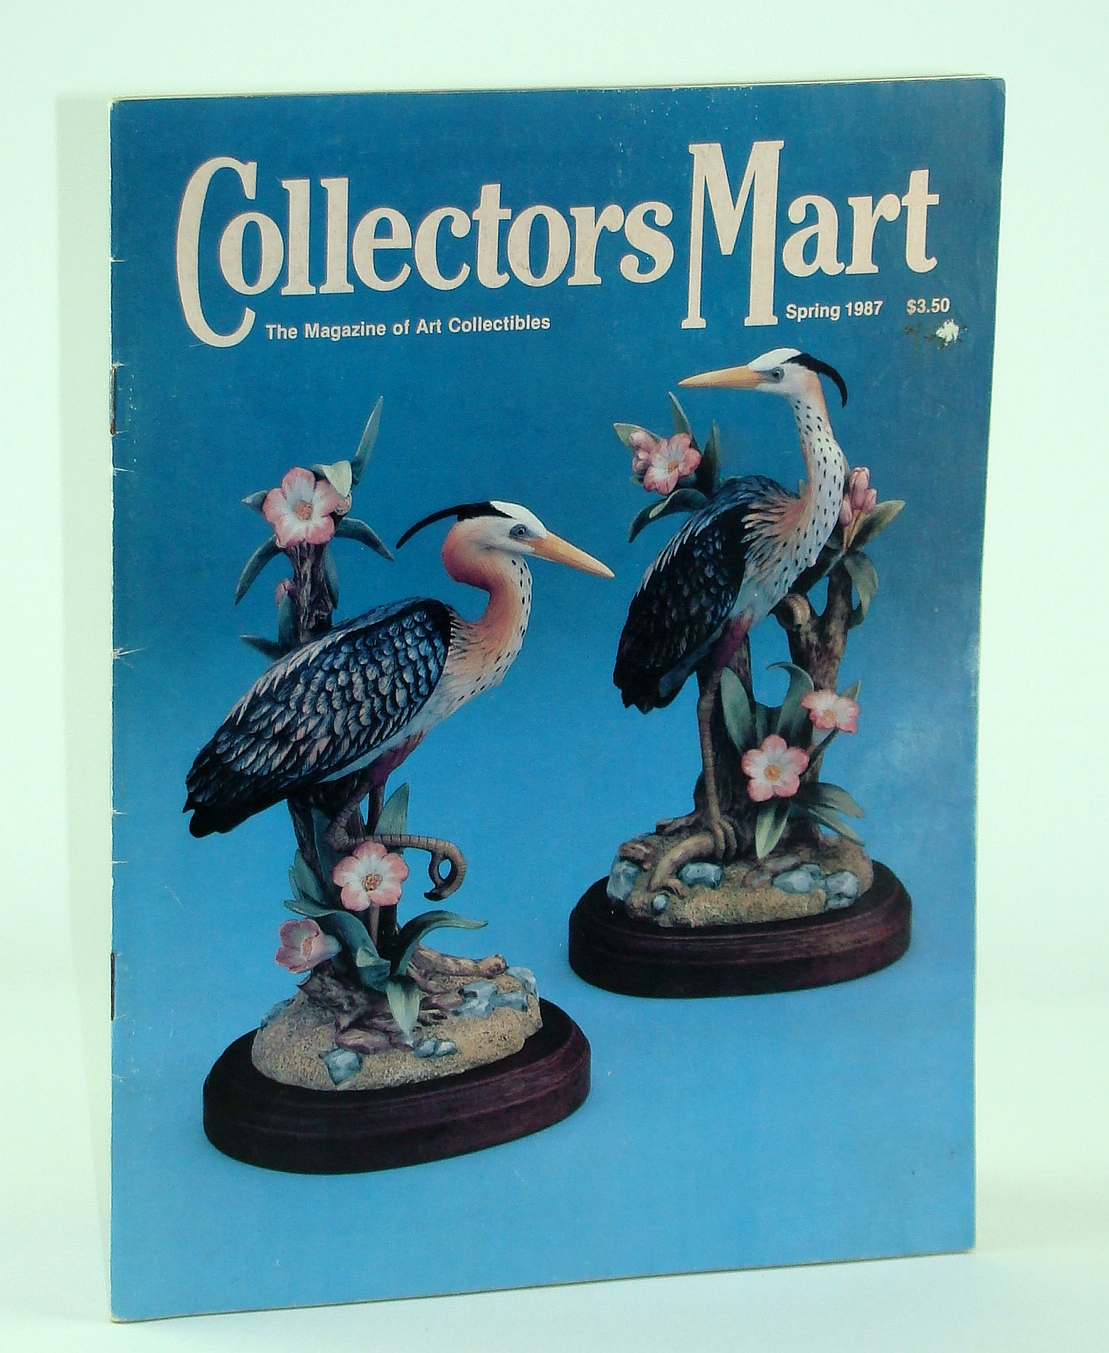 Image for Collector's Mart - The Magazine of Art Collectibles, Spring 1987, Volume XI, No. 3 Spring 1987 - Sandra Kuck